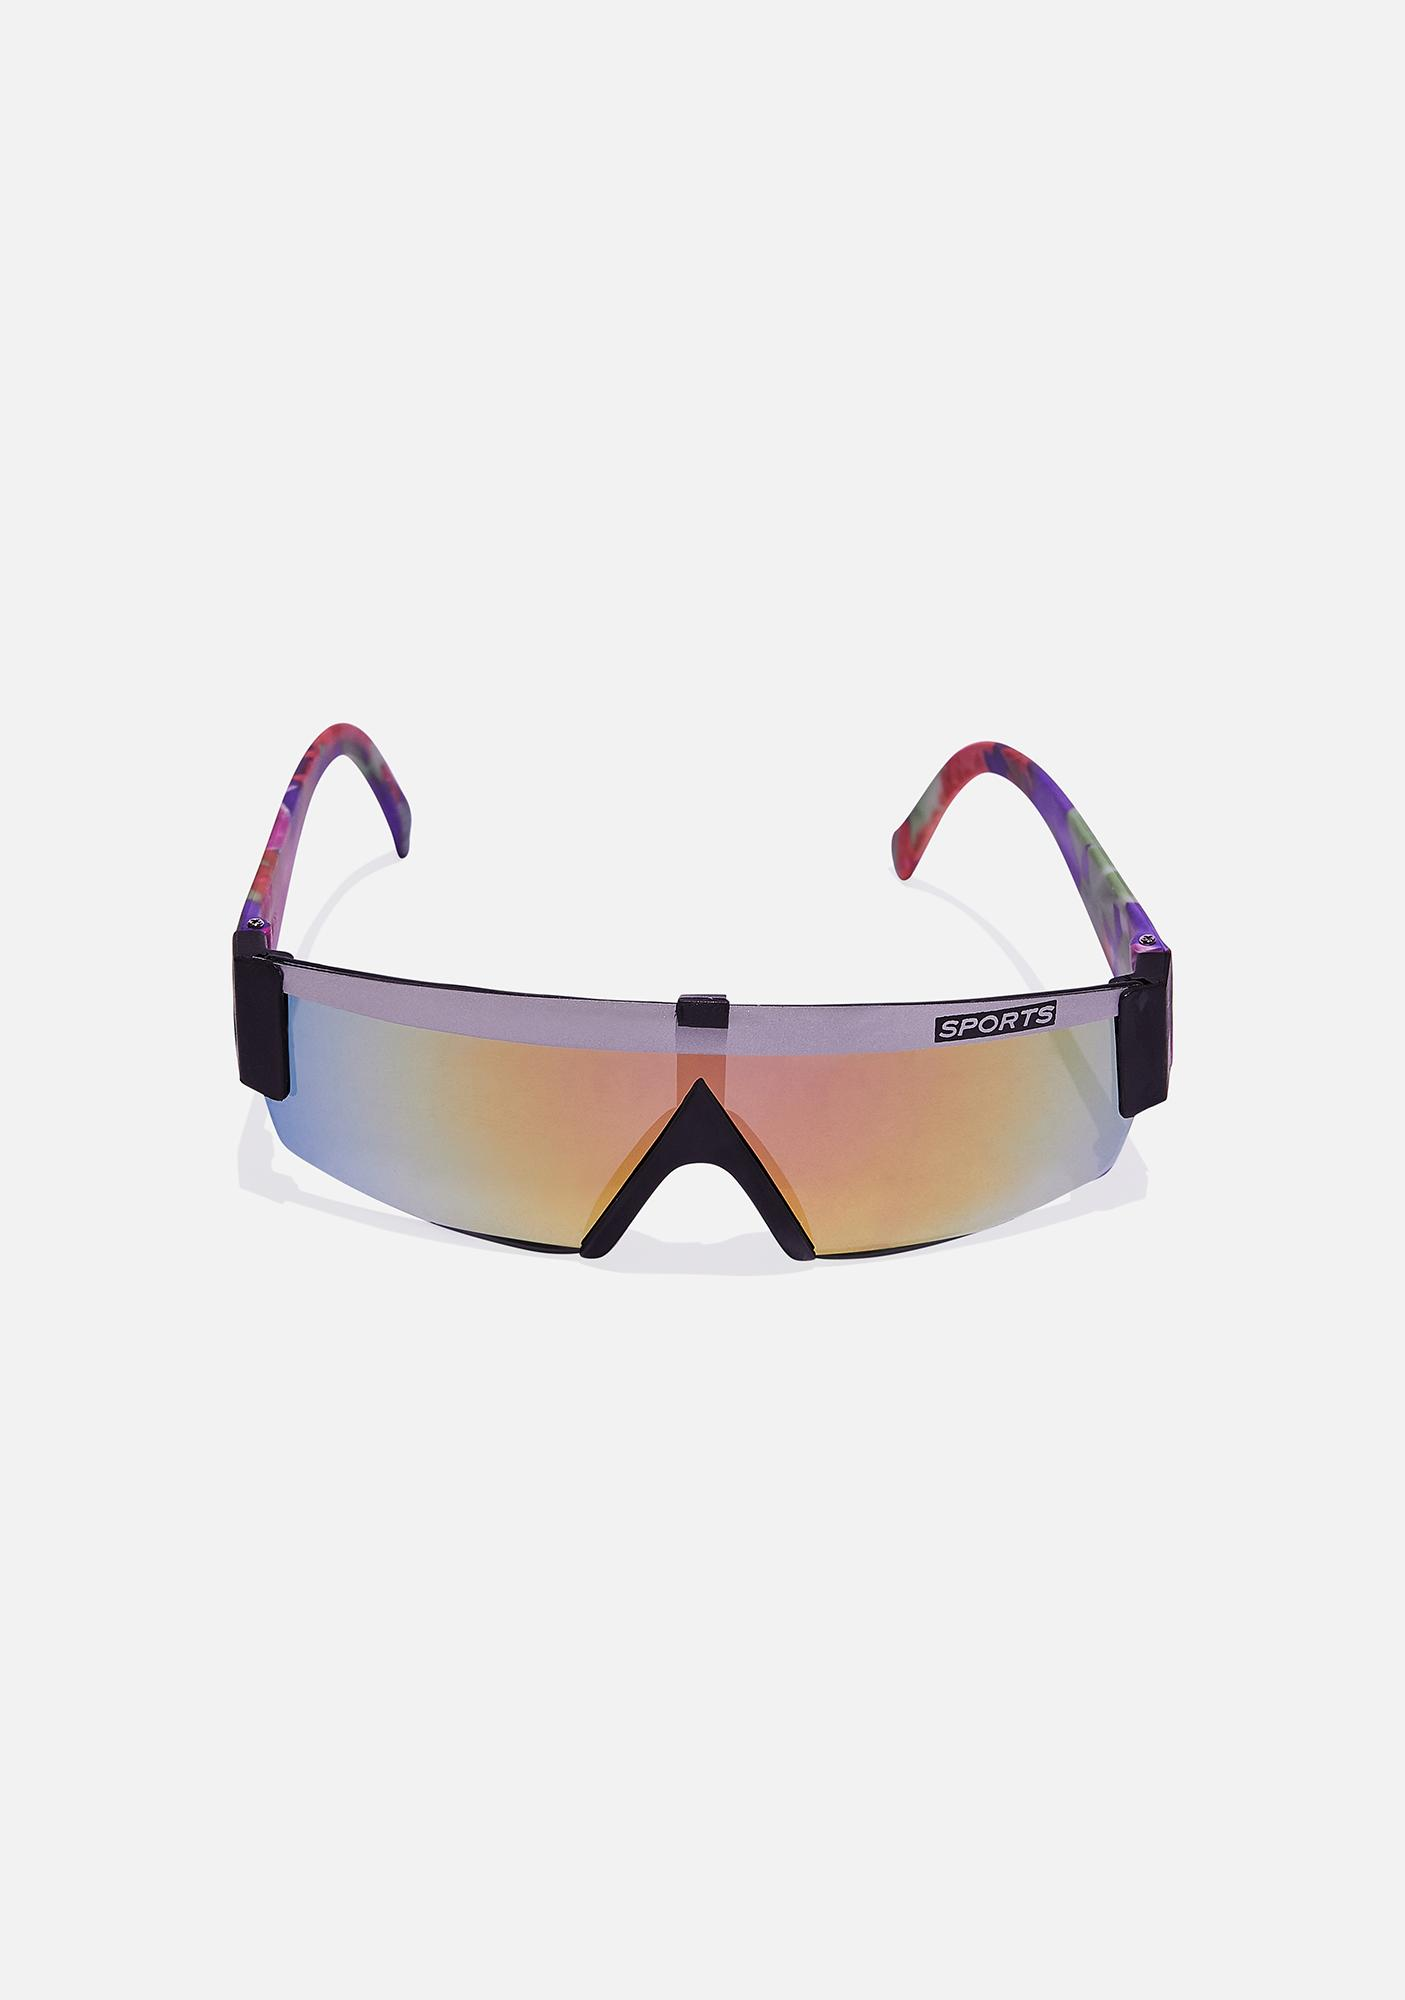 Good Times Eyewear Gray Black Sports Sunglasses